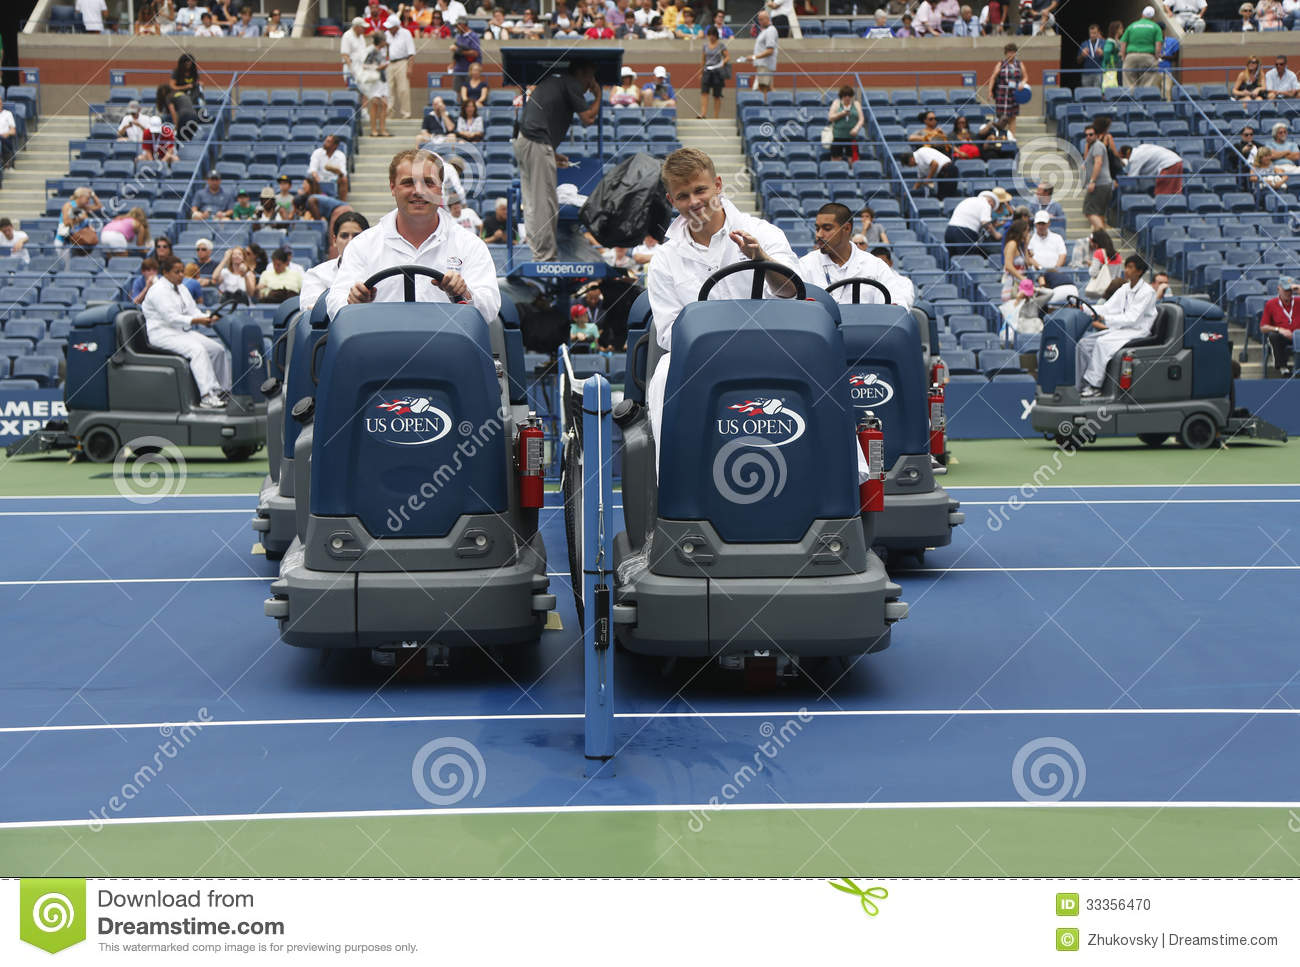 us open cleaning crew drying tennis court after rain delay at arthur ashe stadium editorial. Black Bedroom Furniture Sets. Home Design Ideas